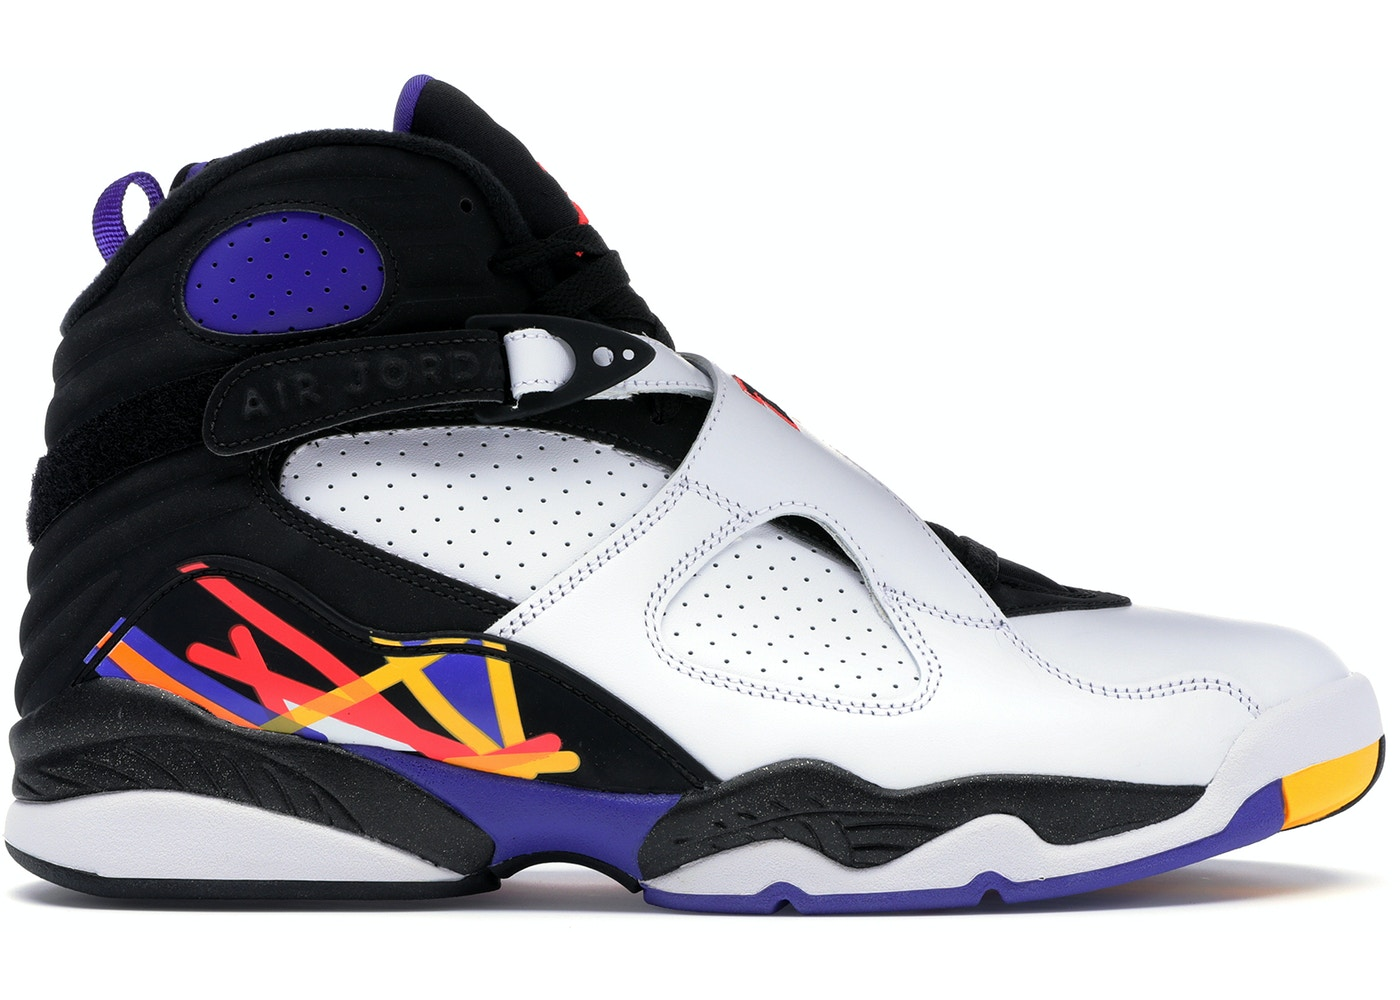 e06071923d5d Jordan 8 Retro Three Peat - 305381-142